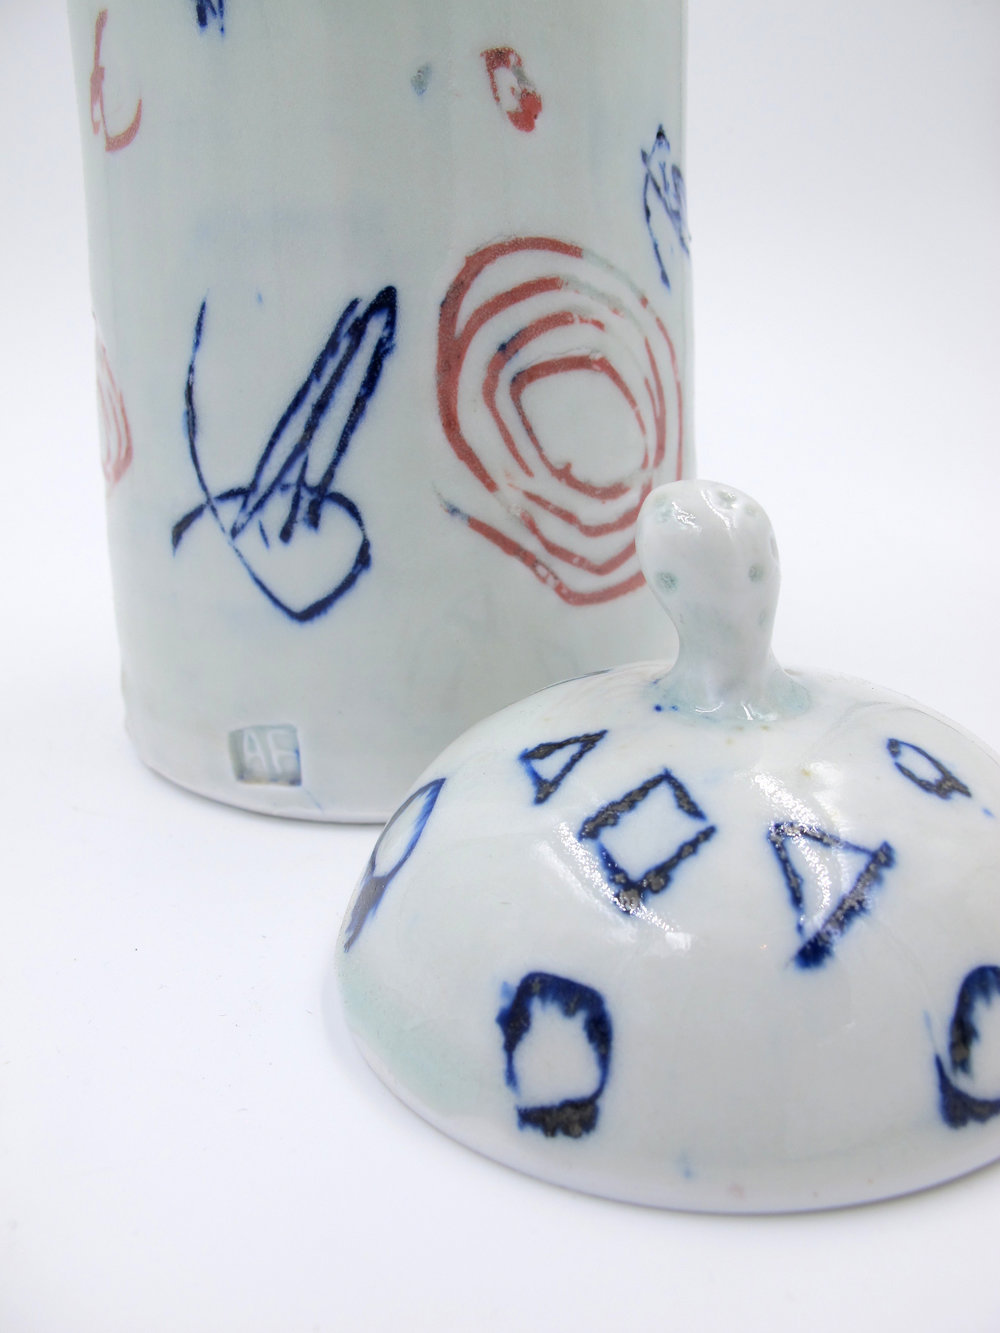 Porcelain Pottery by Adam Frew